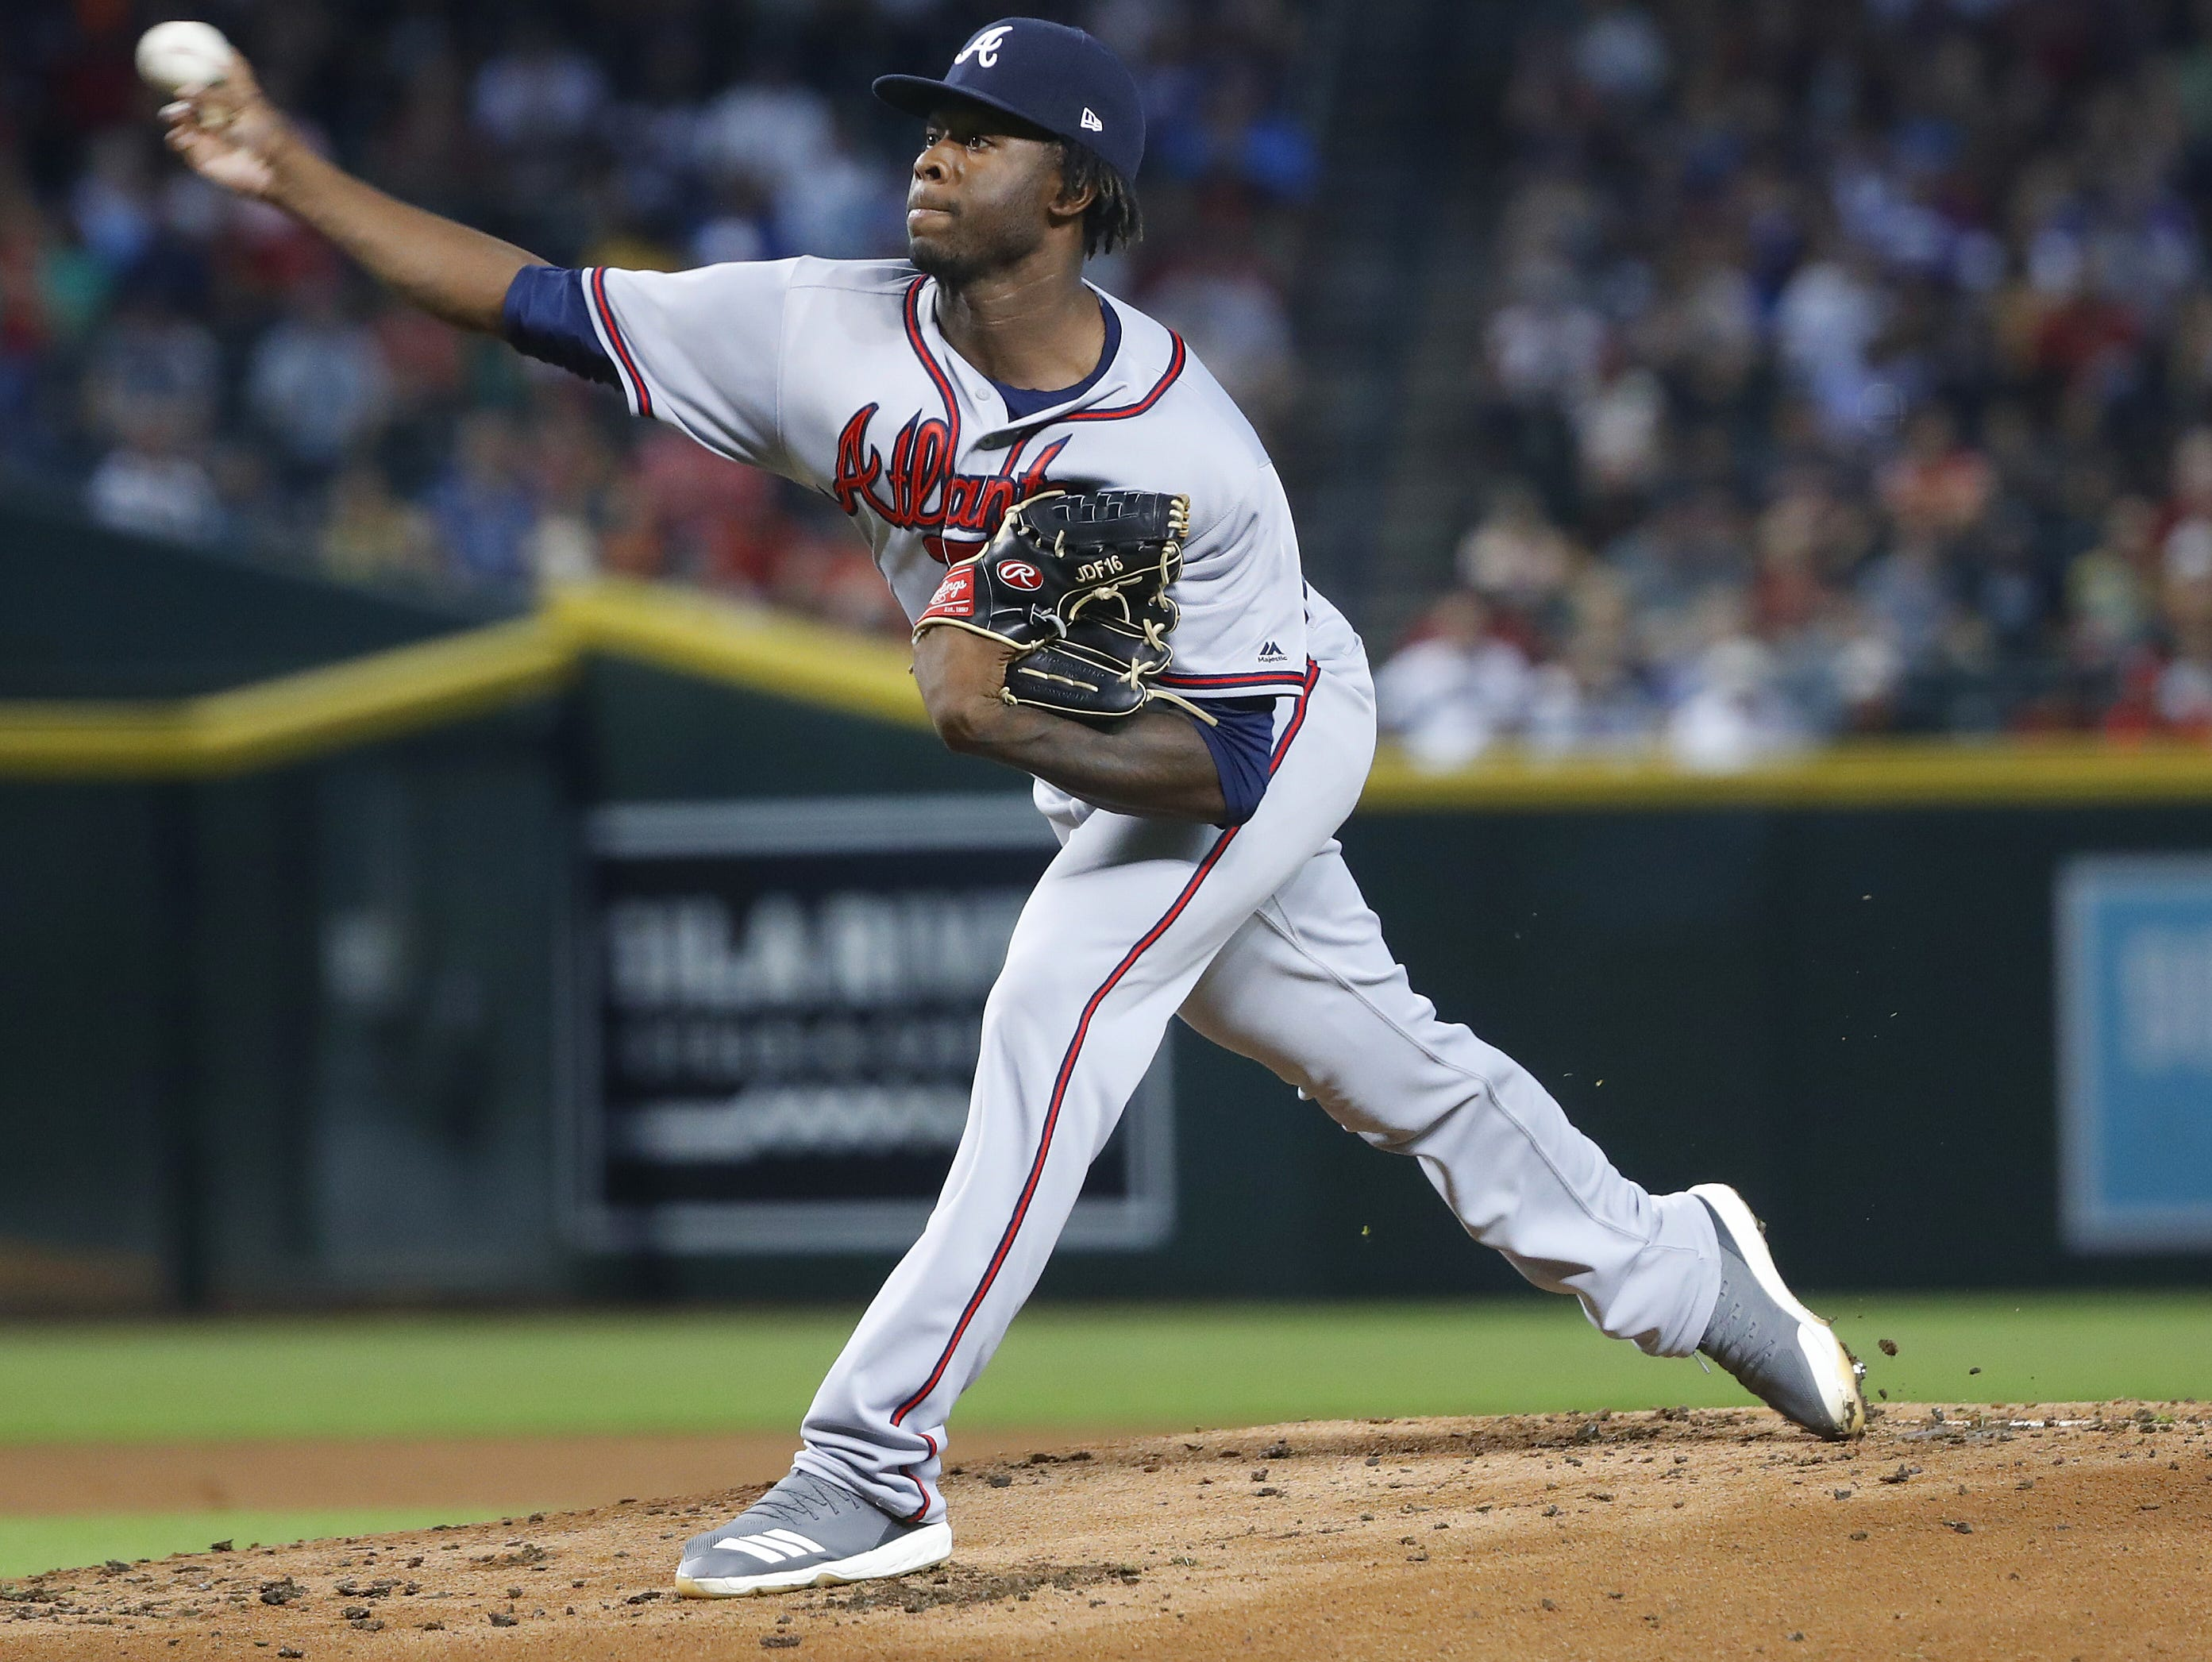 Braves Touki Toussaint pitches during the second inning against the Diamondbacks at Chase Field in Phoenix, Ariz. on Sept. 9, 2018.